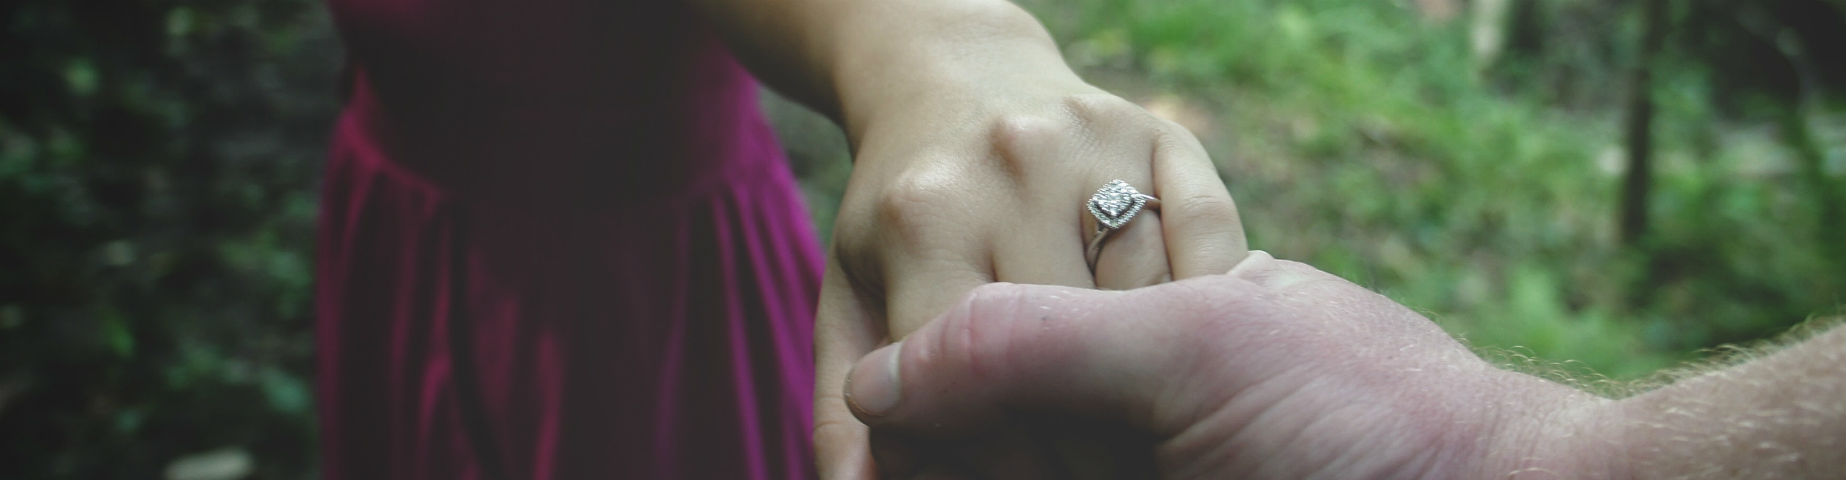 woman holding man's hand and wearing engagement ring